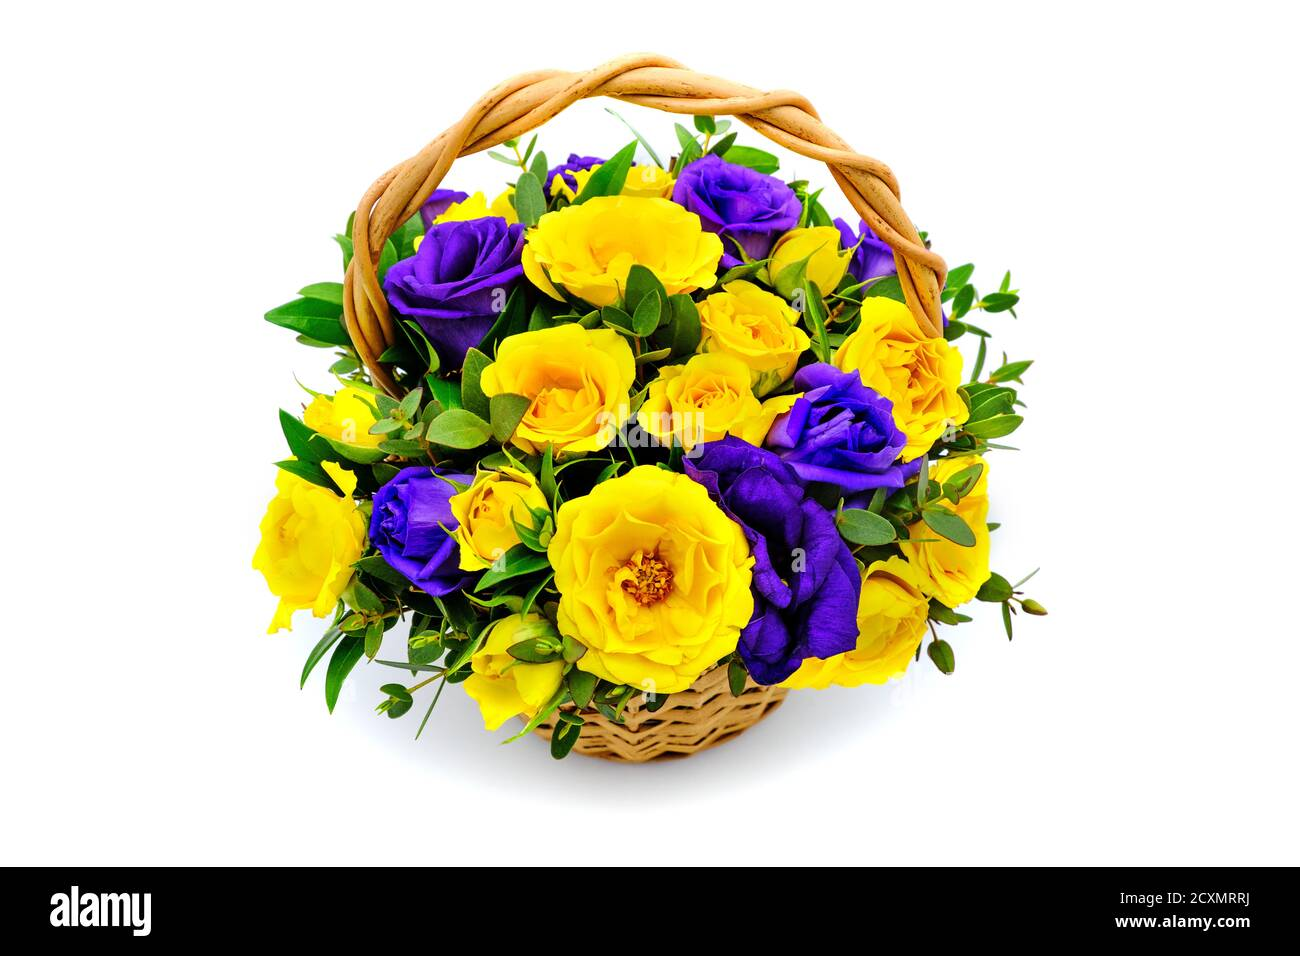 Basket With Yellow And Blue Flowers On Isolated White Background Bouquet Of Yellow And Purple Roses Beautiful Flowers In A Wicker Basket Bouquet Of Stock Photo Alamy